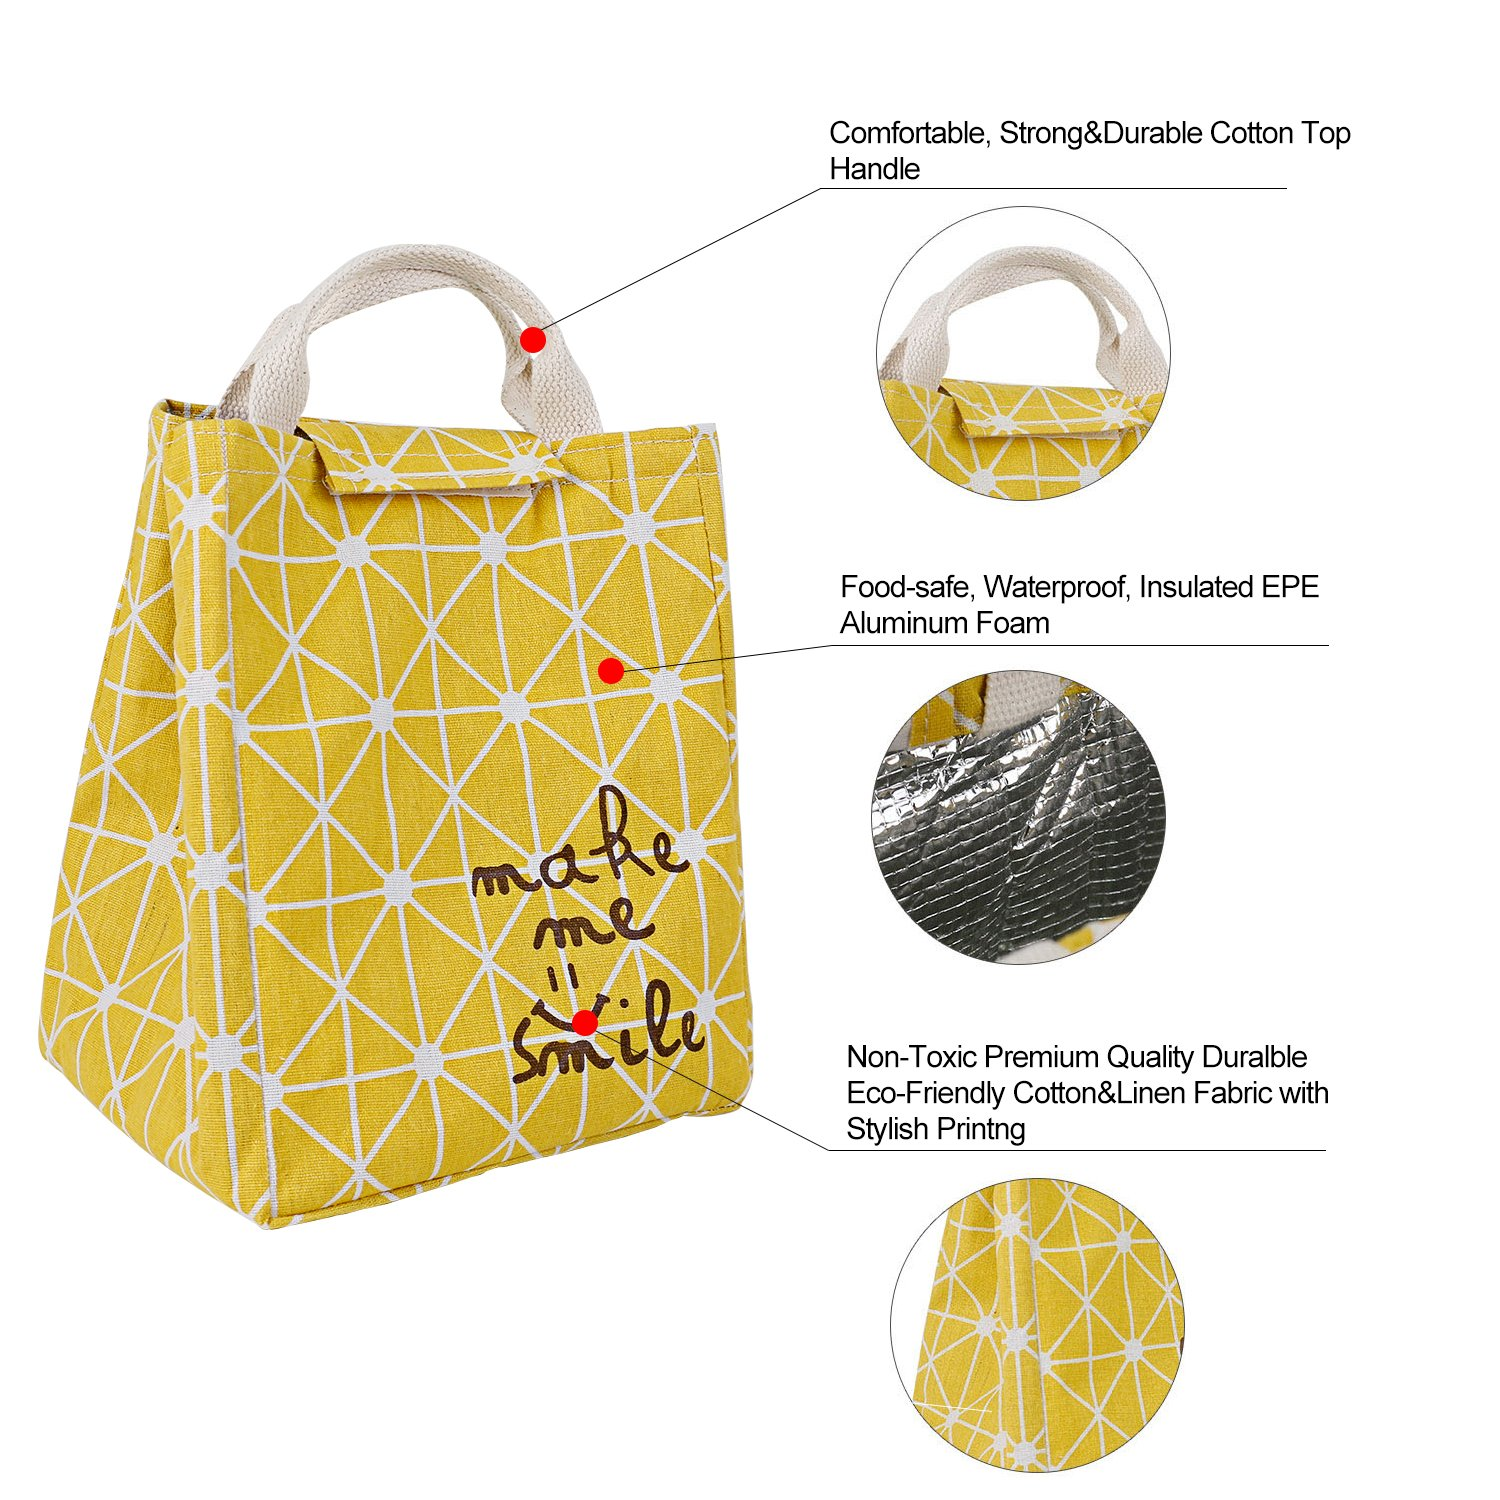 HOMESPON Reusable Lunch Bags Printed Canvas Fabric with Insulated Waterproof Aluminum Foil, Lunch Box for Women, Kids, Students (Rhombus Pattern-Yellow) by HOMESPON (Image #3)